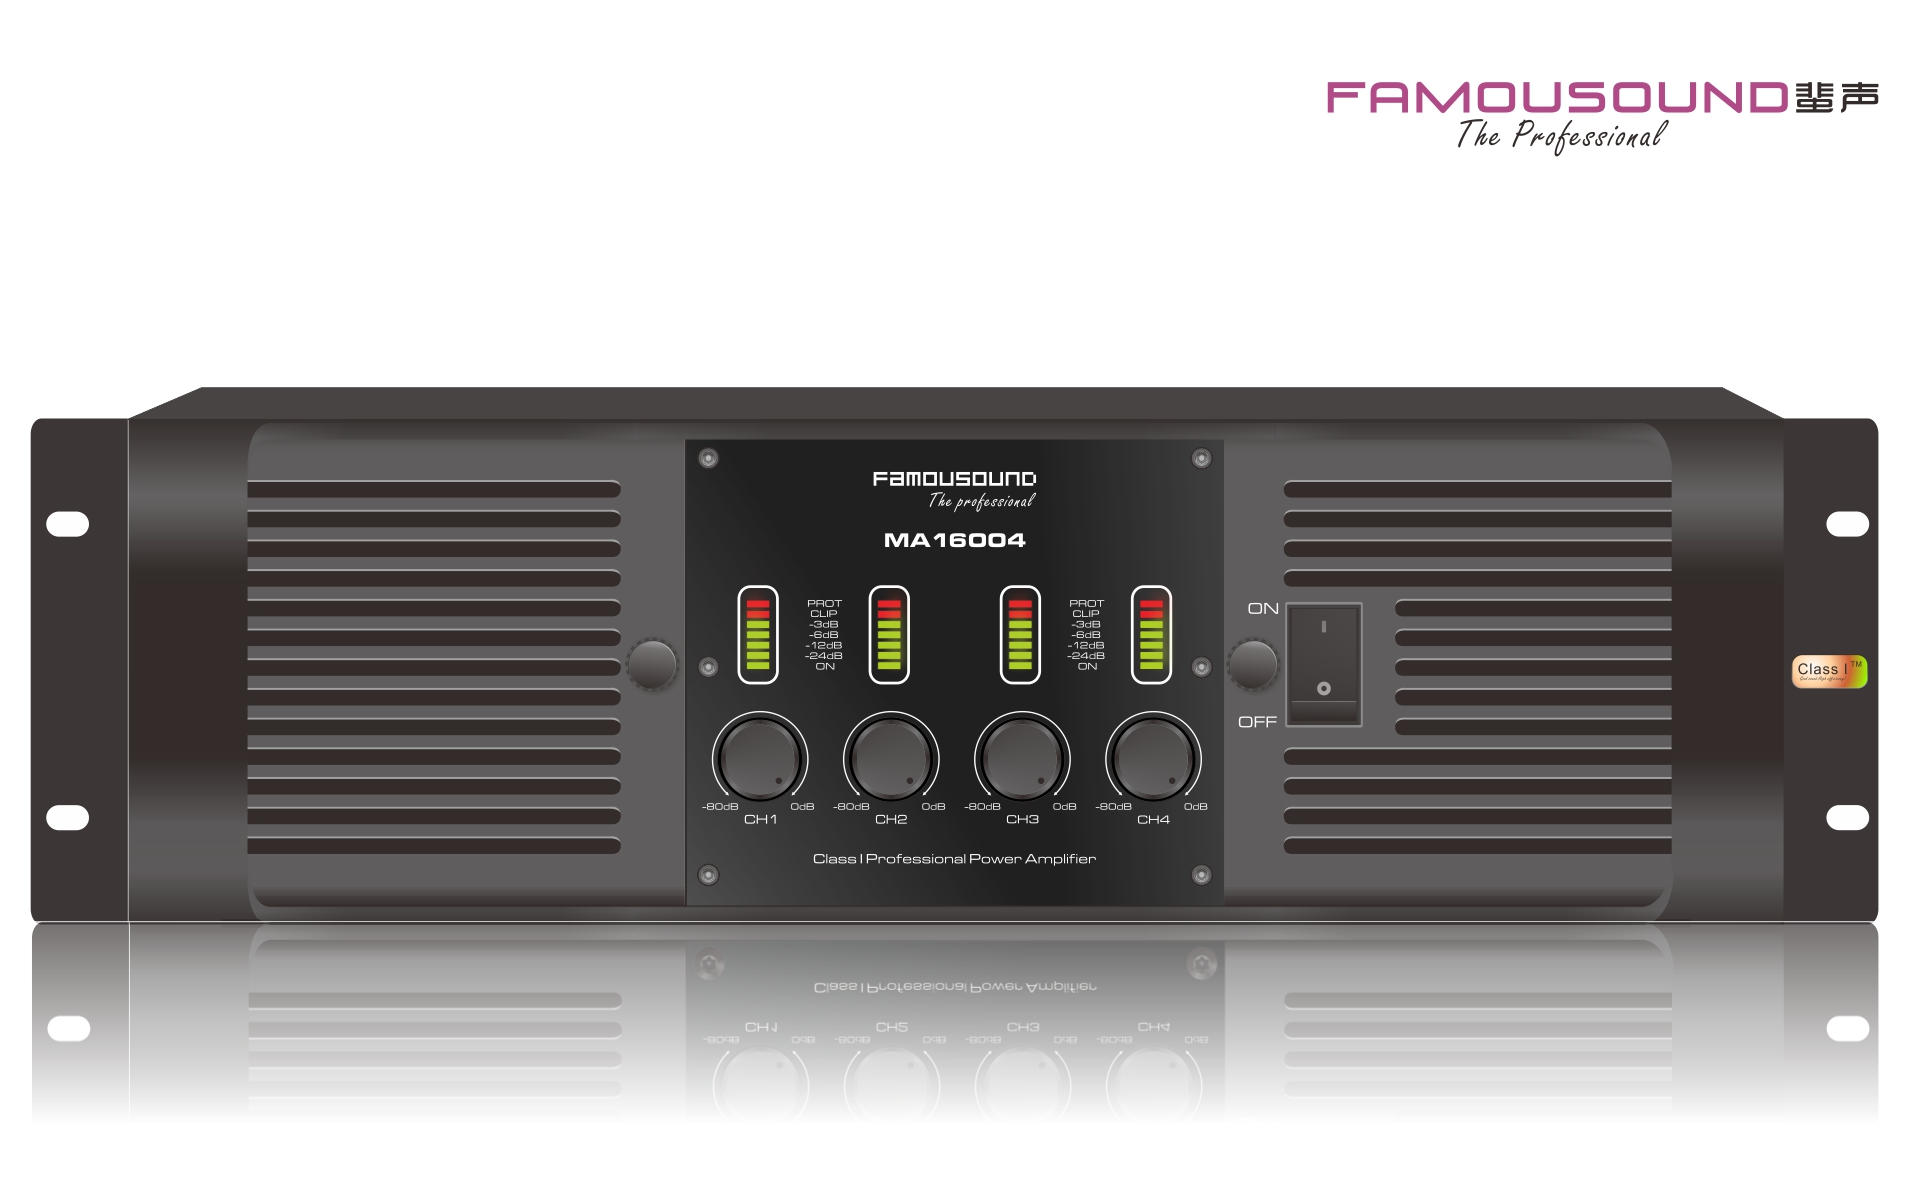 FAMOUSOUND MA04 series user's manual